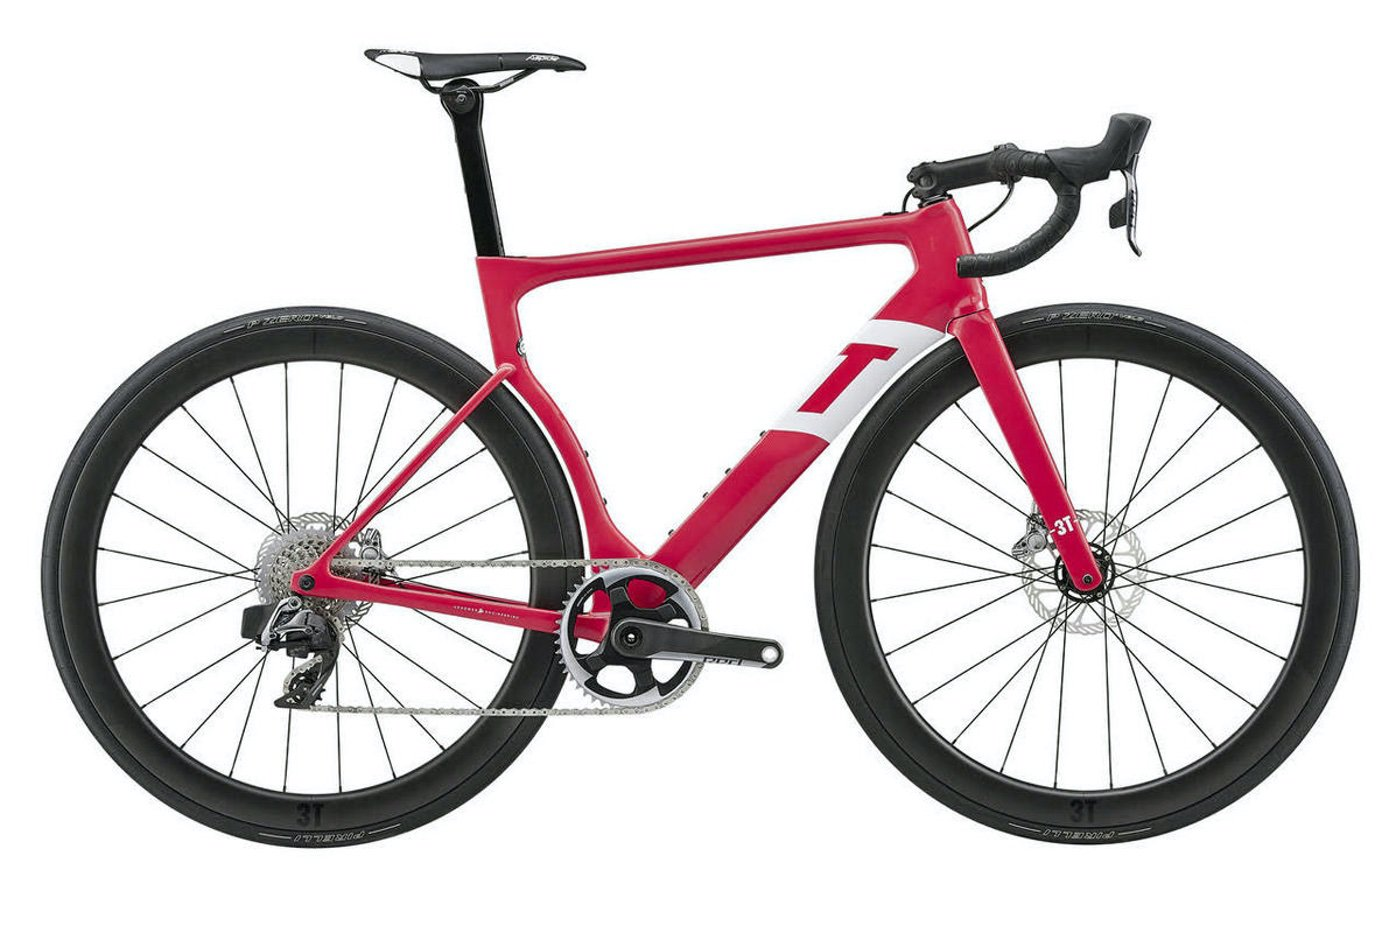 3T Strada Team RED eTap